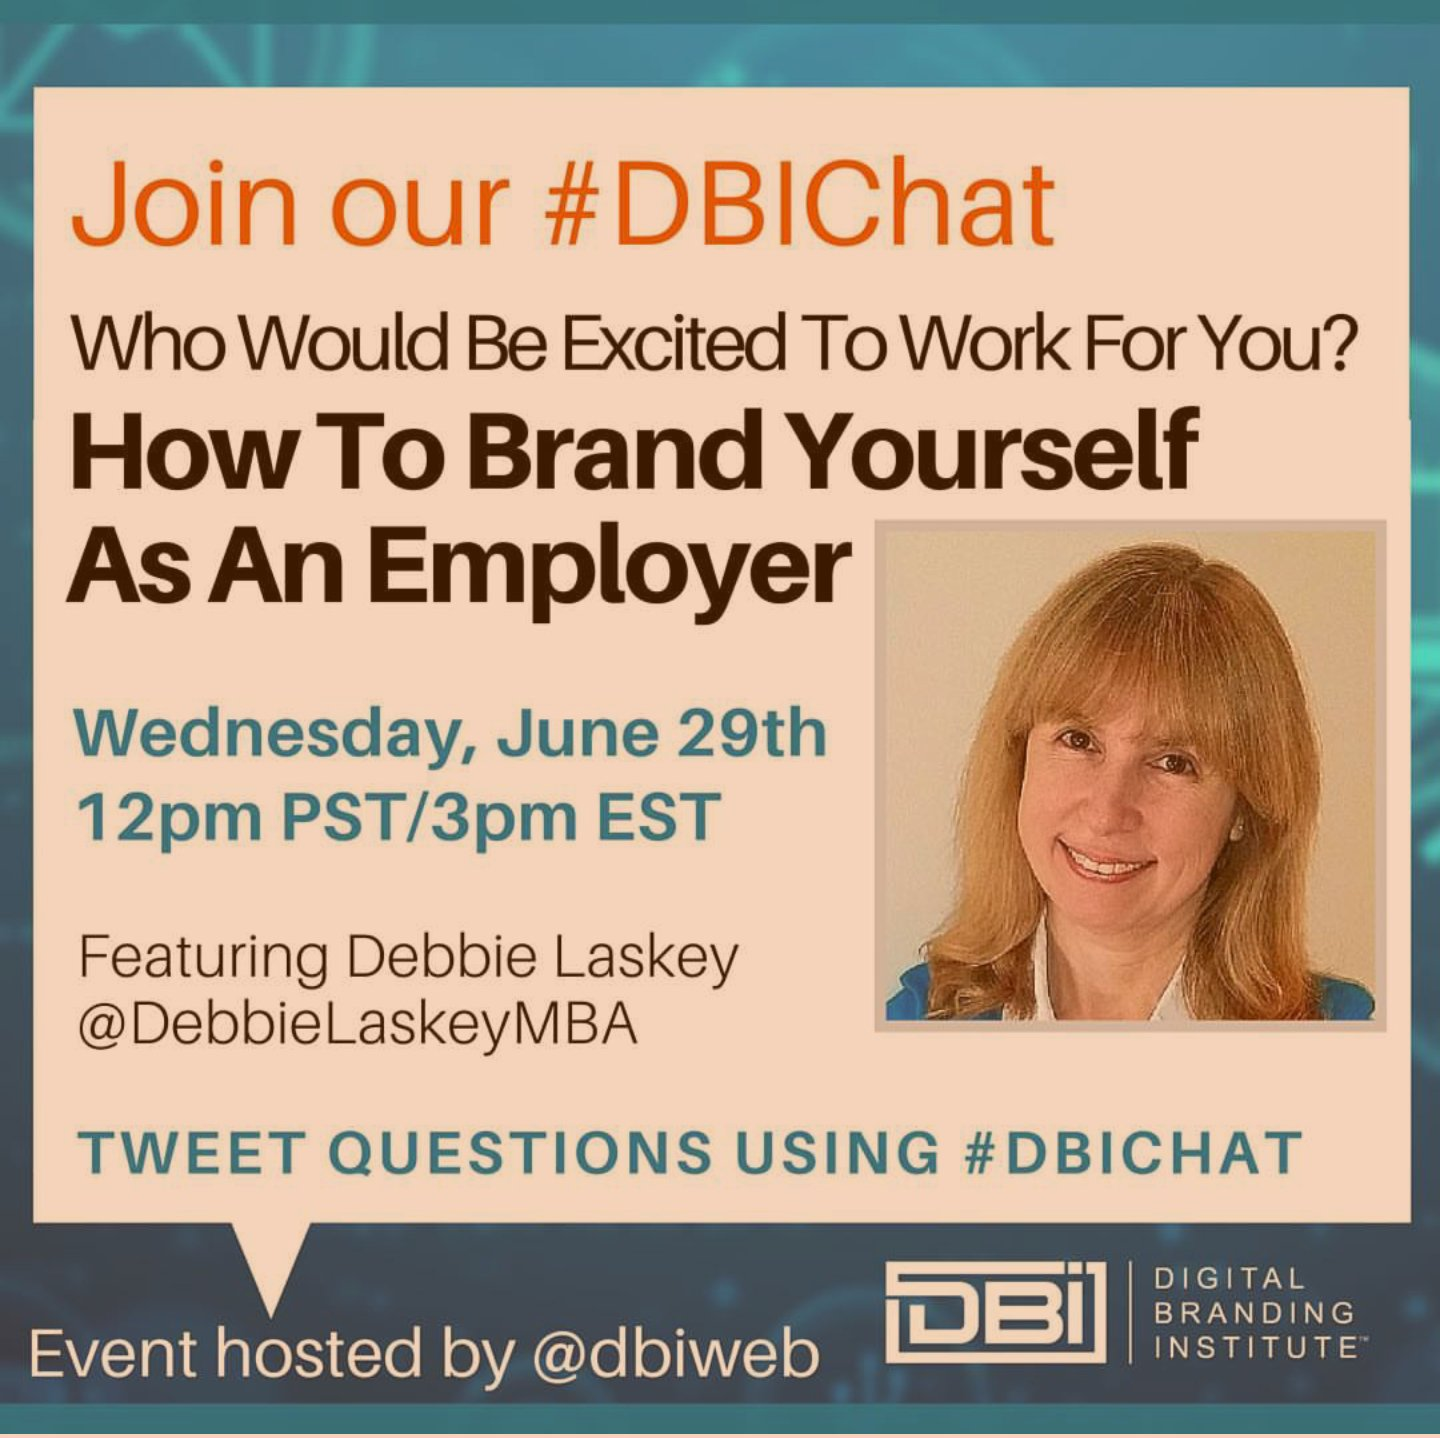 Great to see @DebbieLaskeyMBA will be on #DBIChat on June 29th 3 p.m EST.  #employerbranding #brandtips https://t.co/wCszsu4P8D